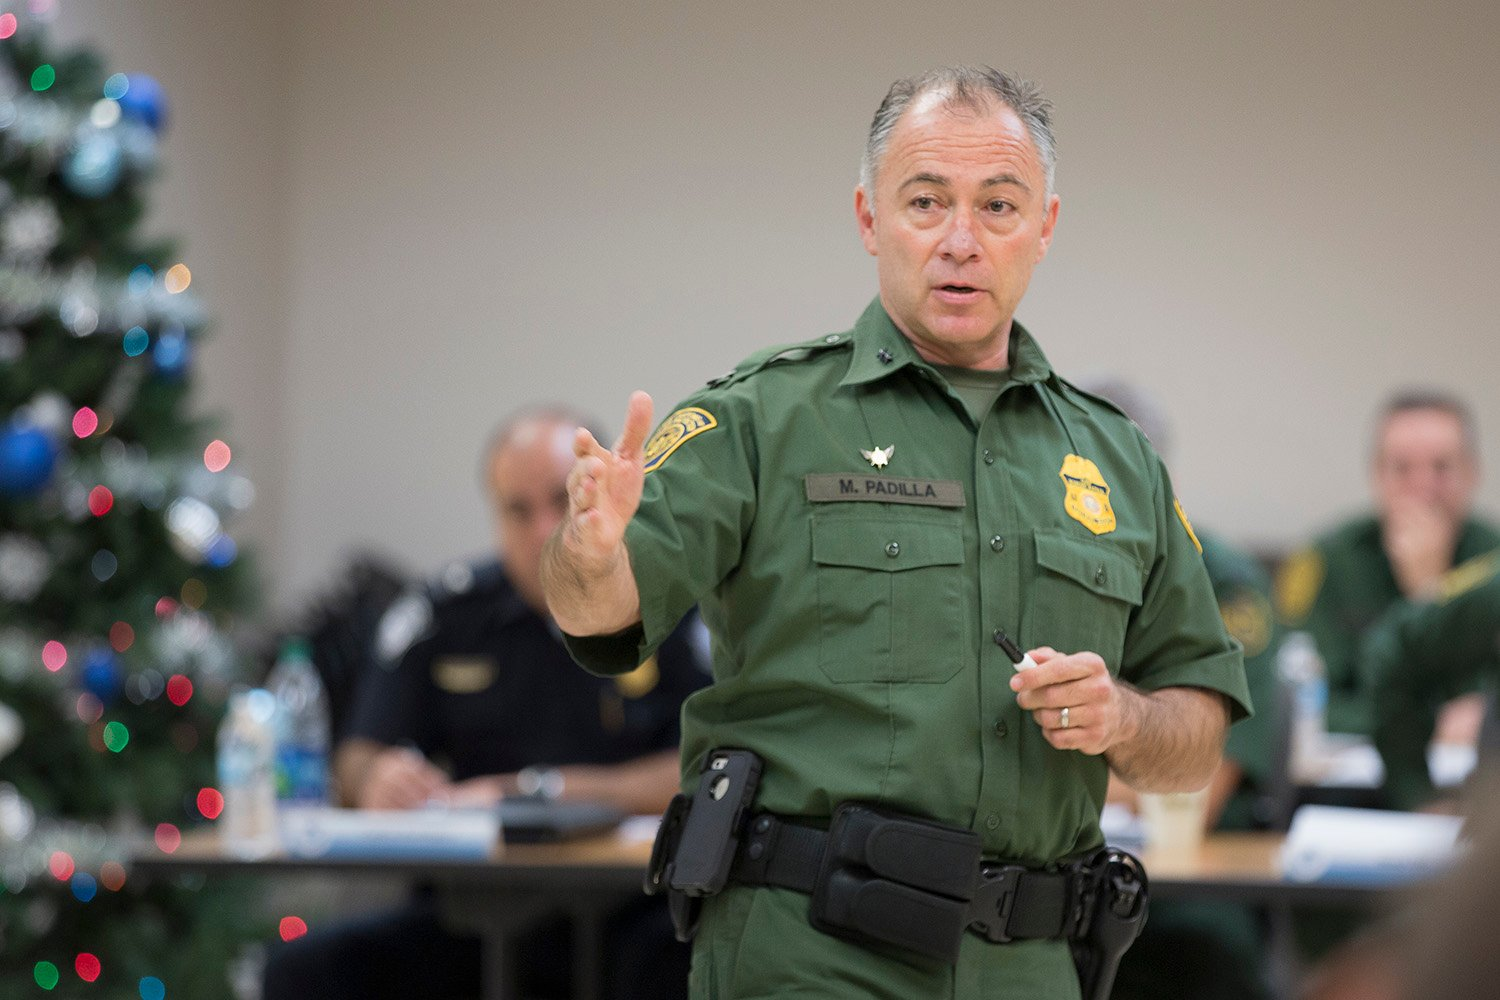 U.S. Border Patrol Rio Grande Valley Sector Chief Manuel Padilla